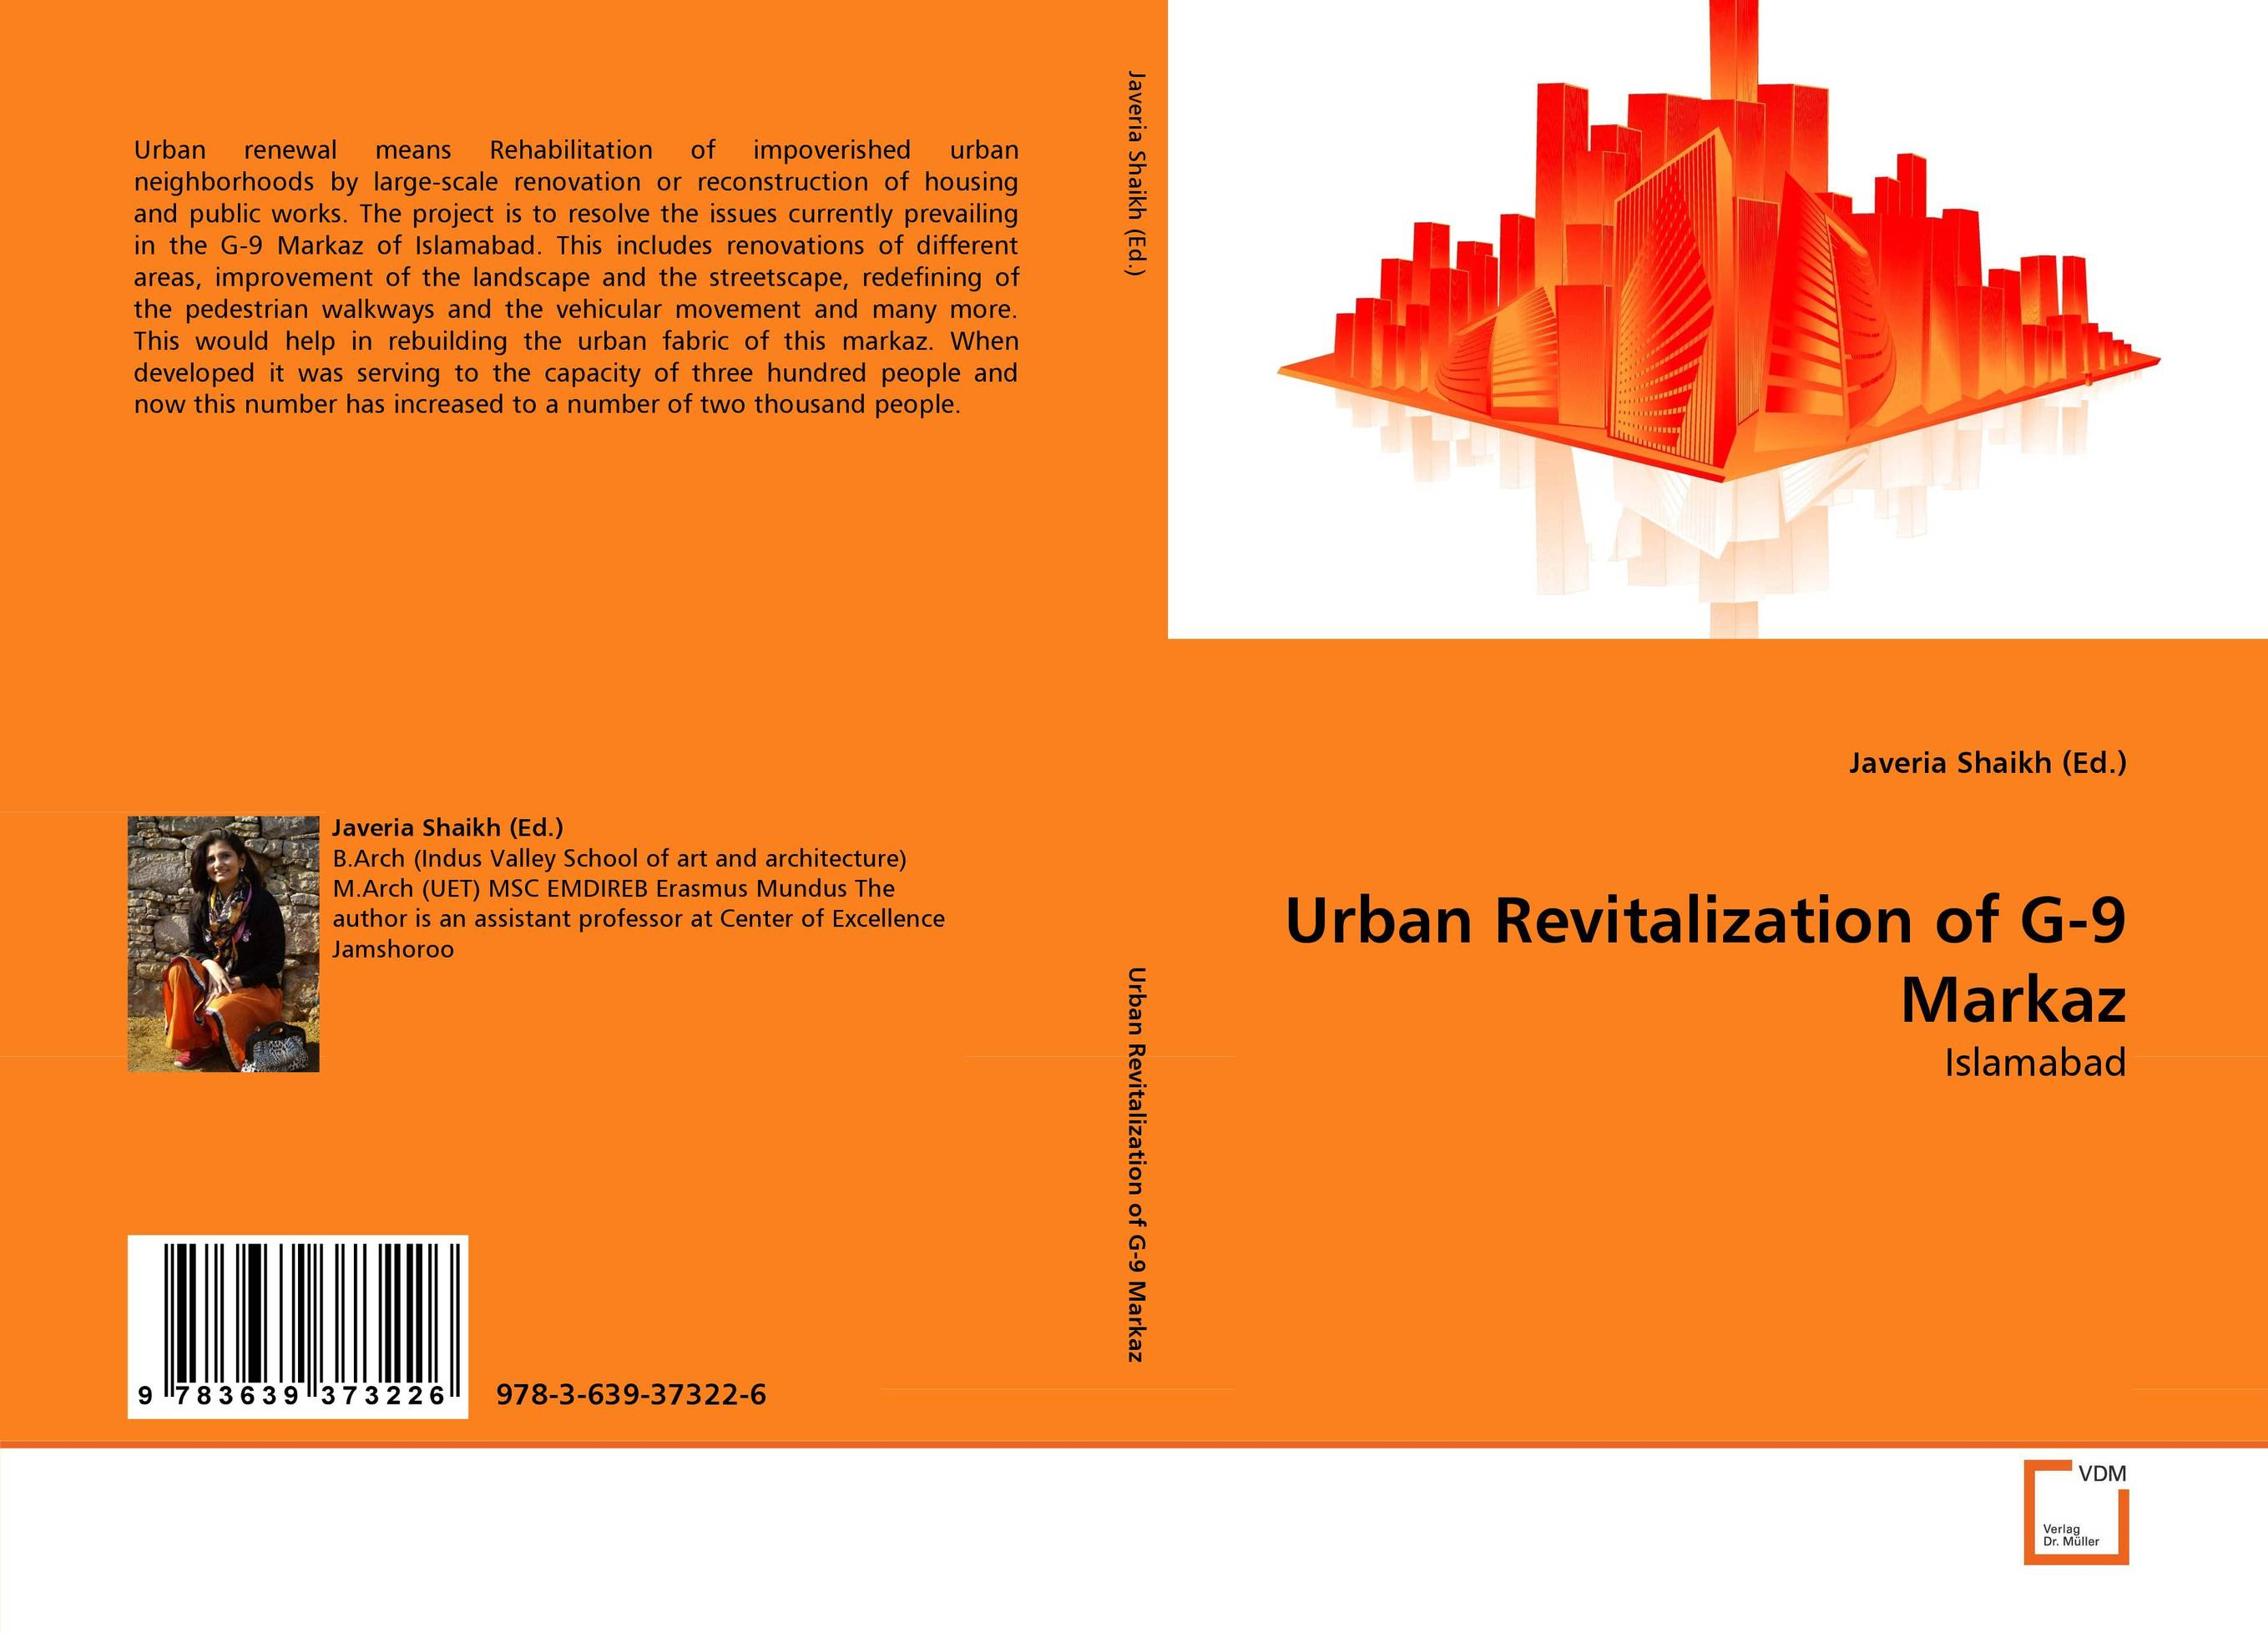 Urban Revitalization of G-9 Markaz the people at number 9